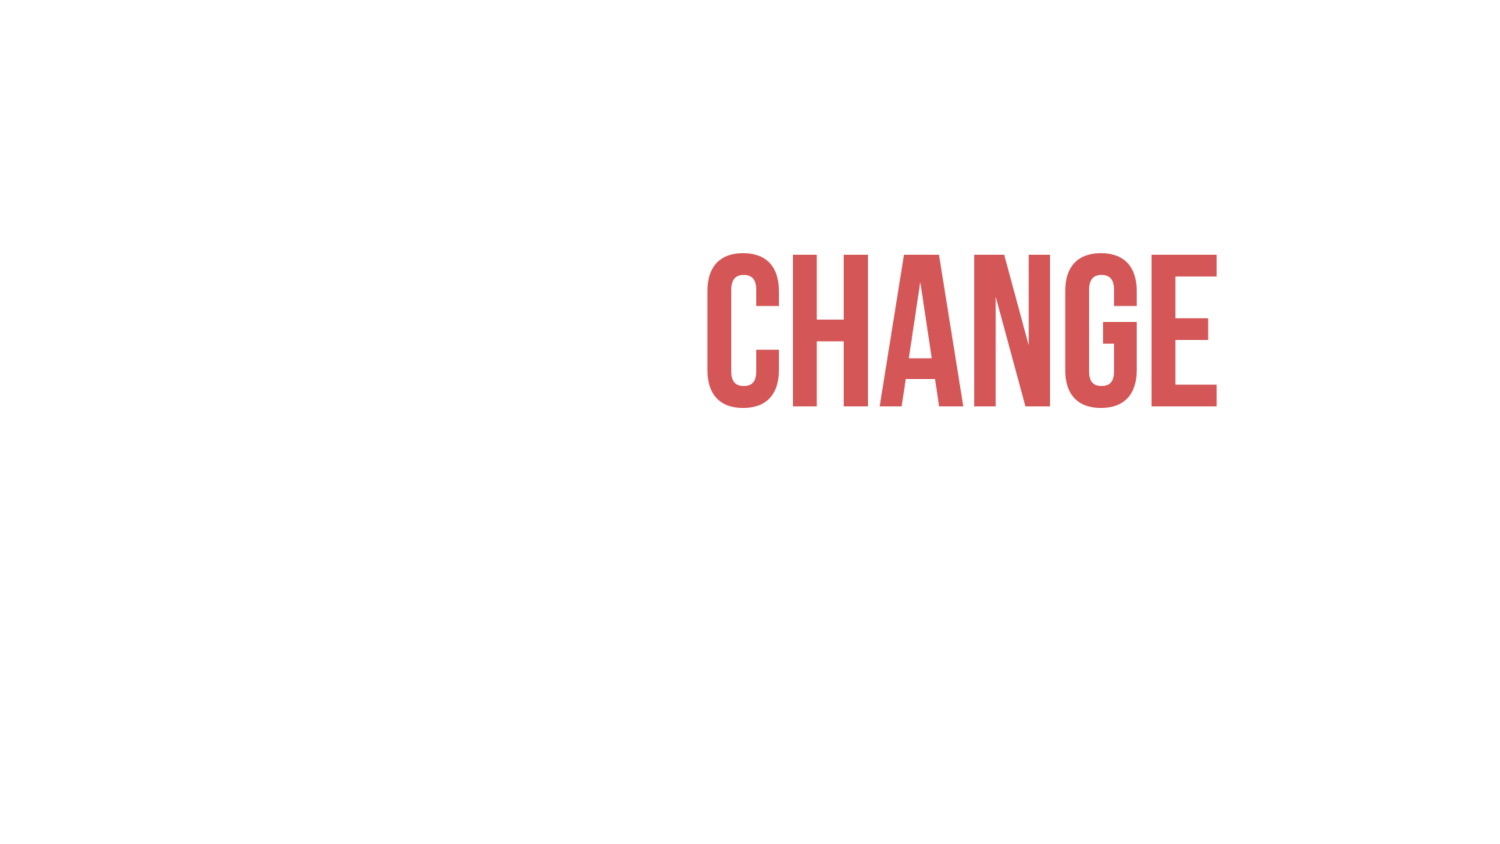 PhotoChange